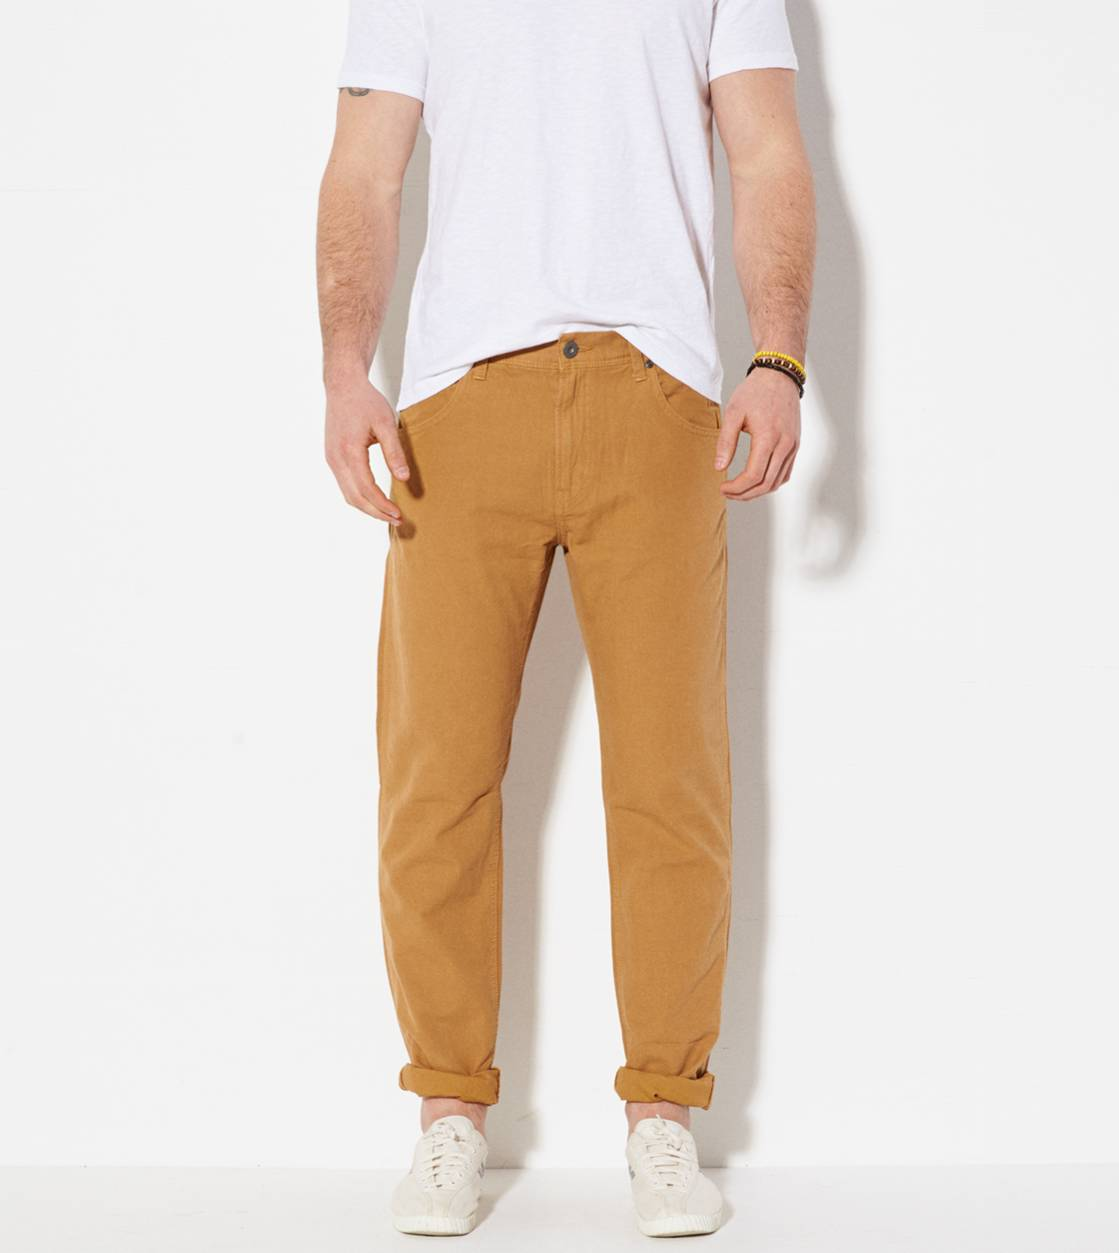 Ginger Khaki AE Workwear 5-Pocket Pant